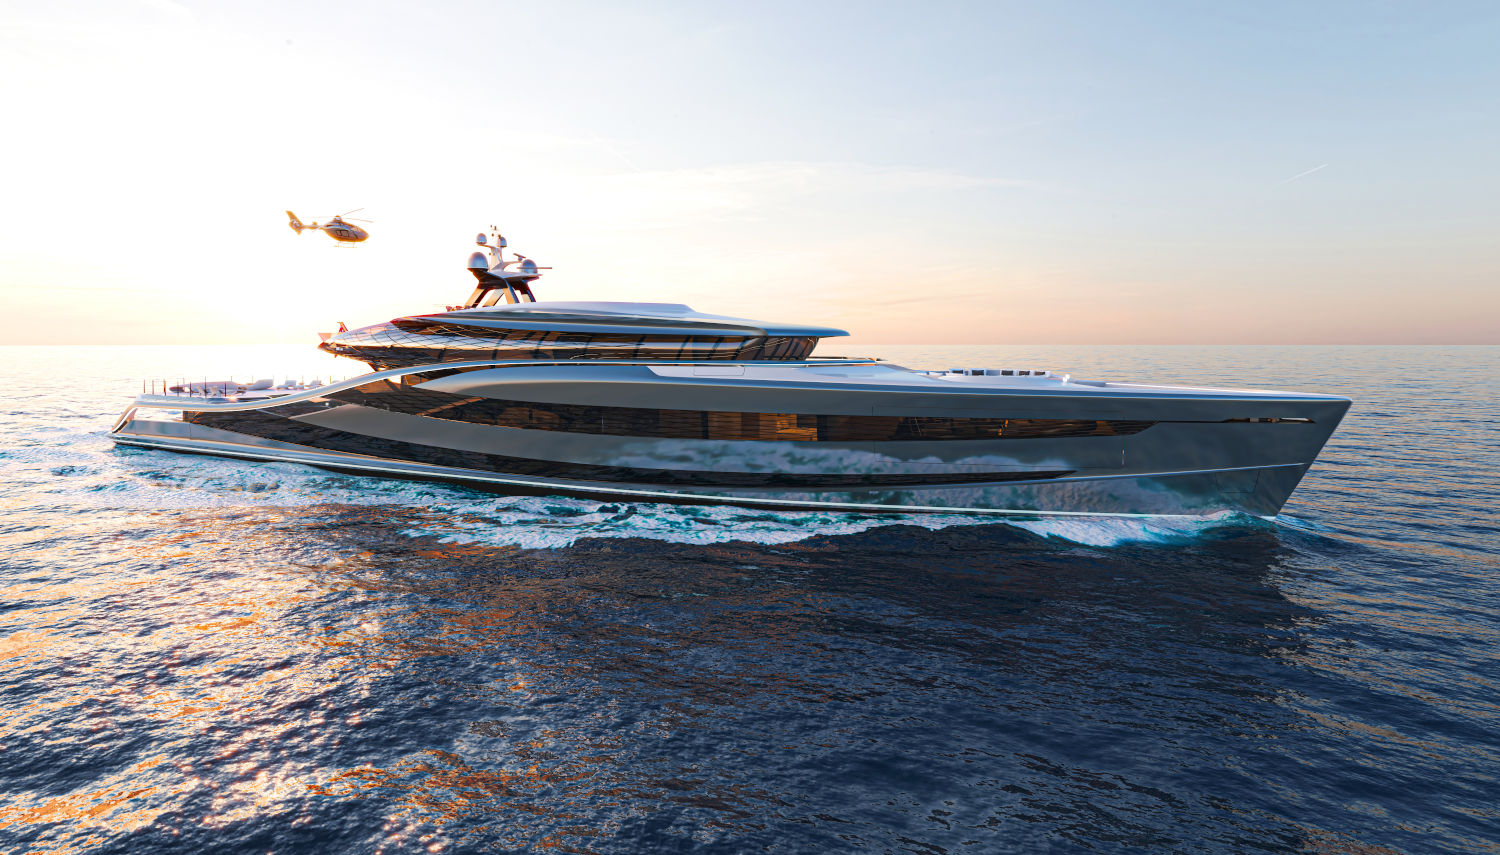 Futura mega yachts offer an innovative architecture experience